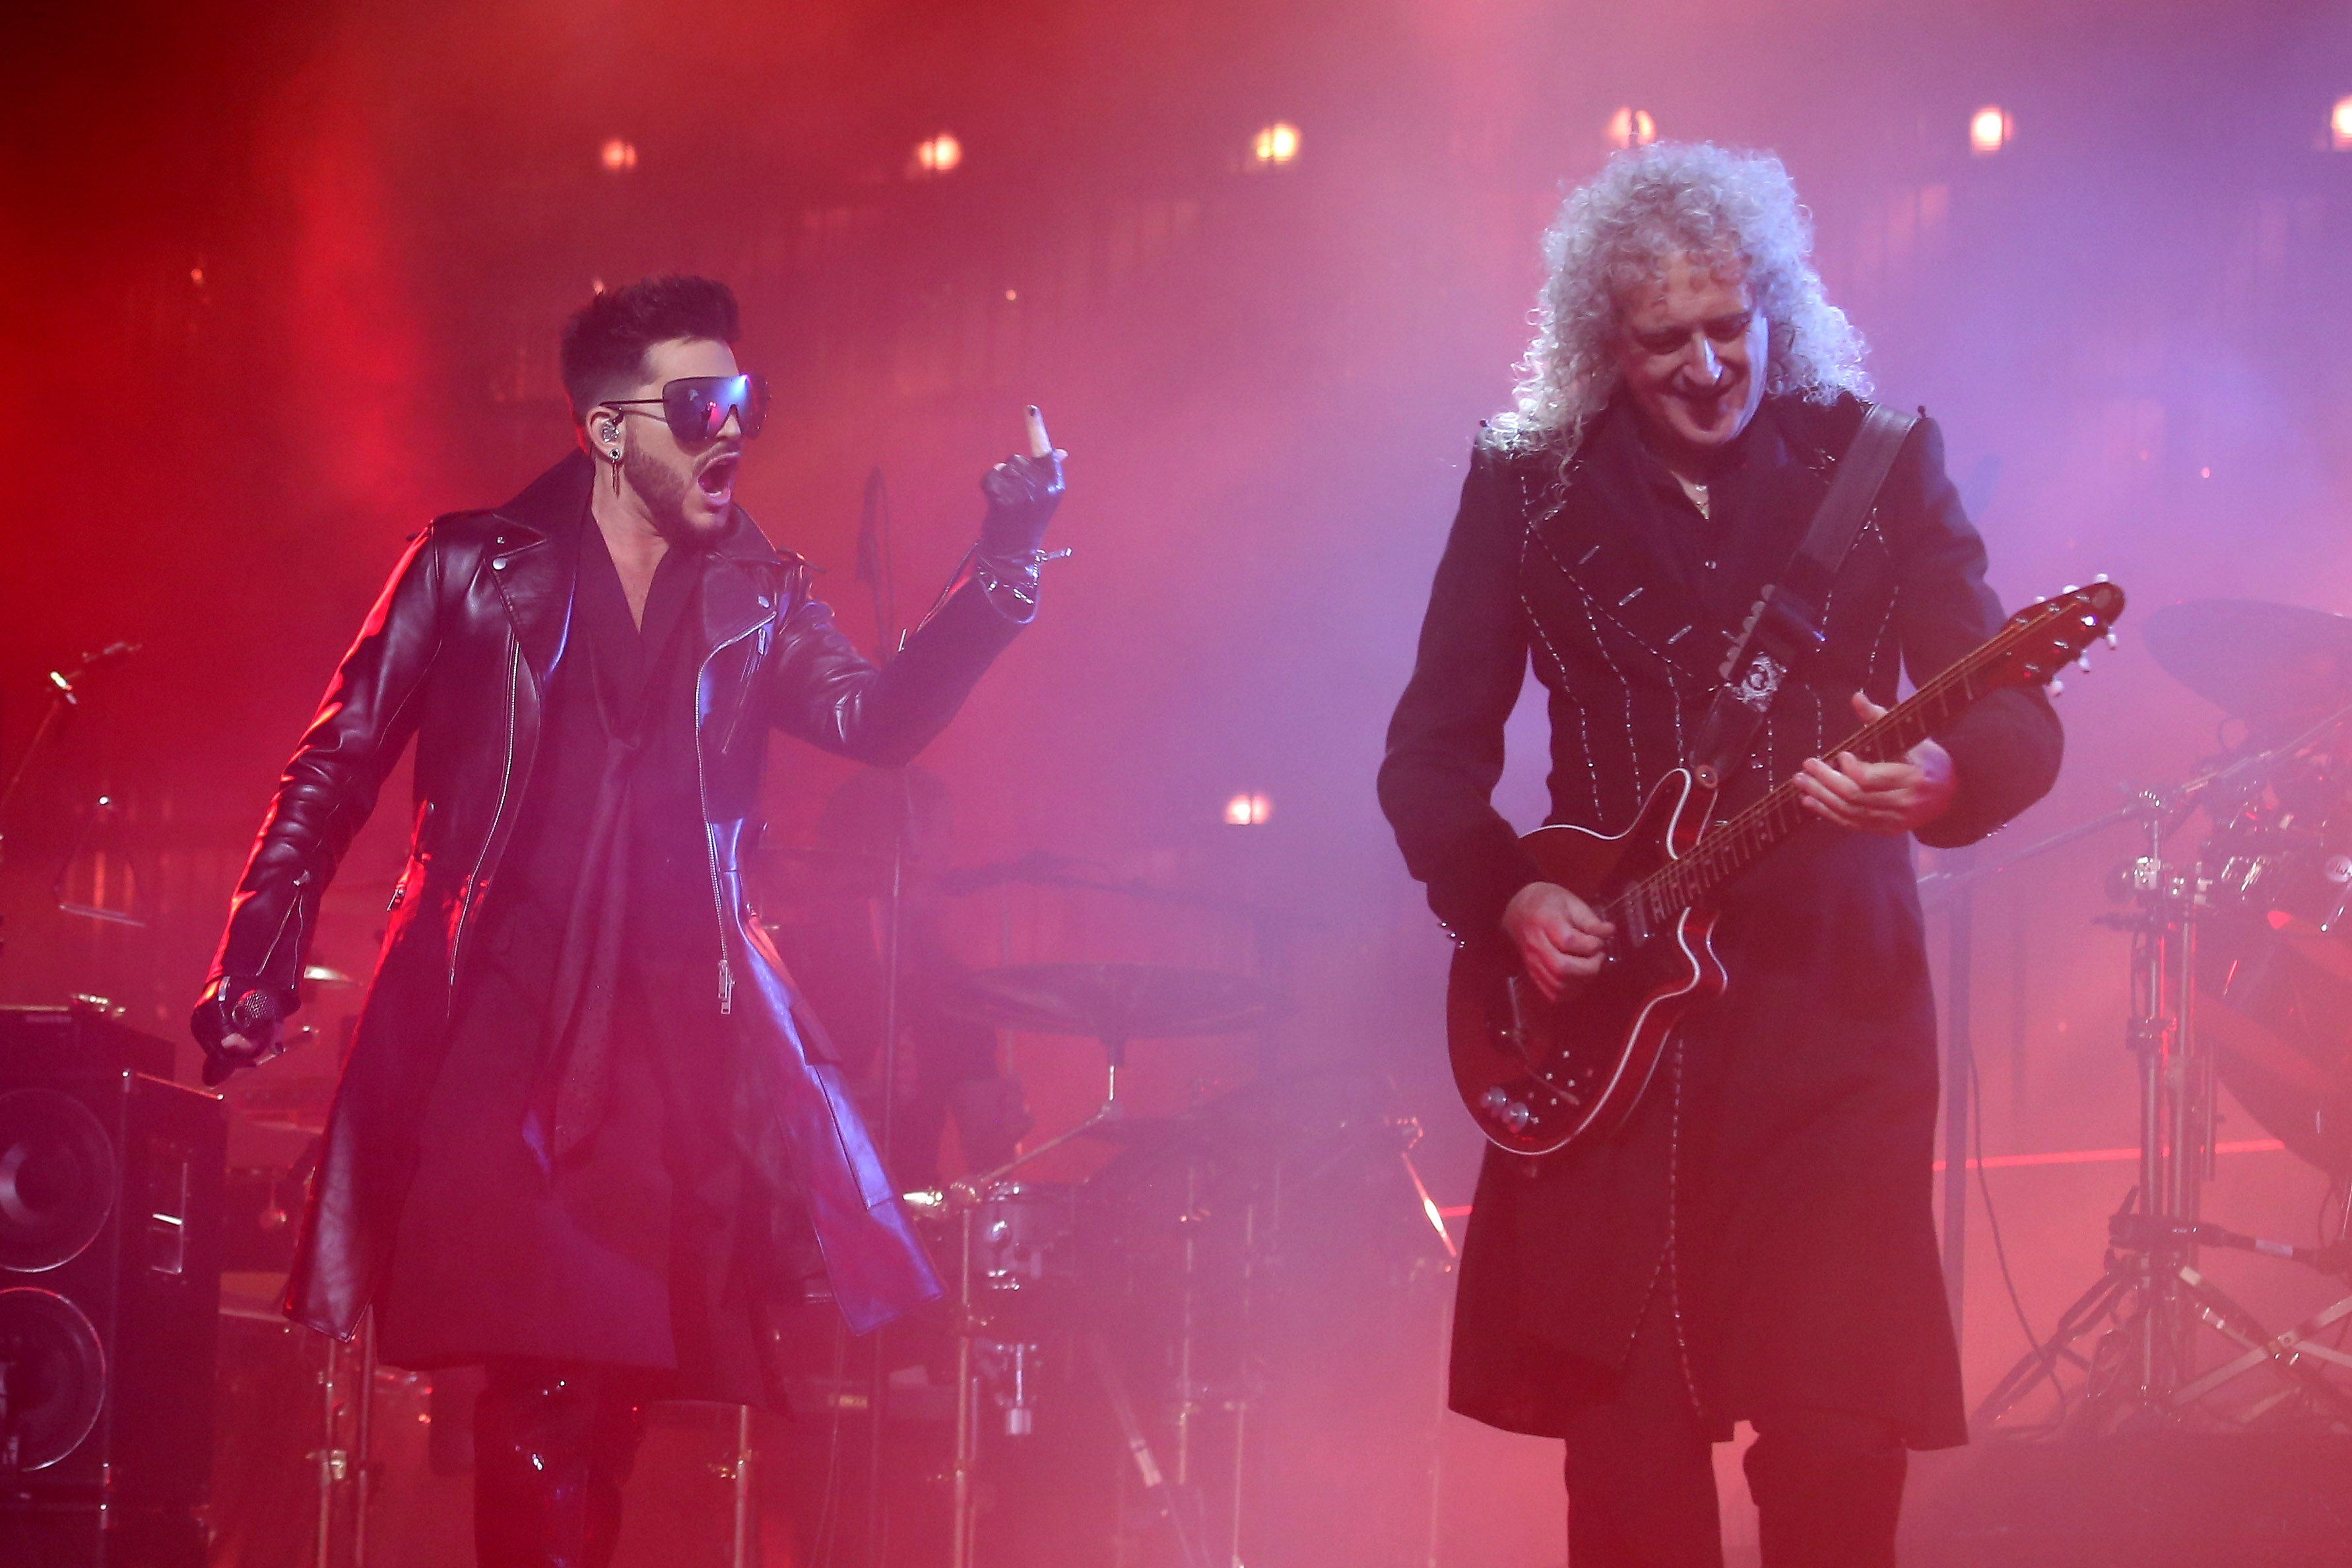 Adam Lambert and Brian May of Queen perform live on stage at The O2 Arena on December 12, 2017